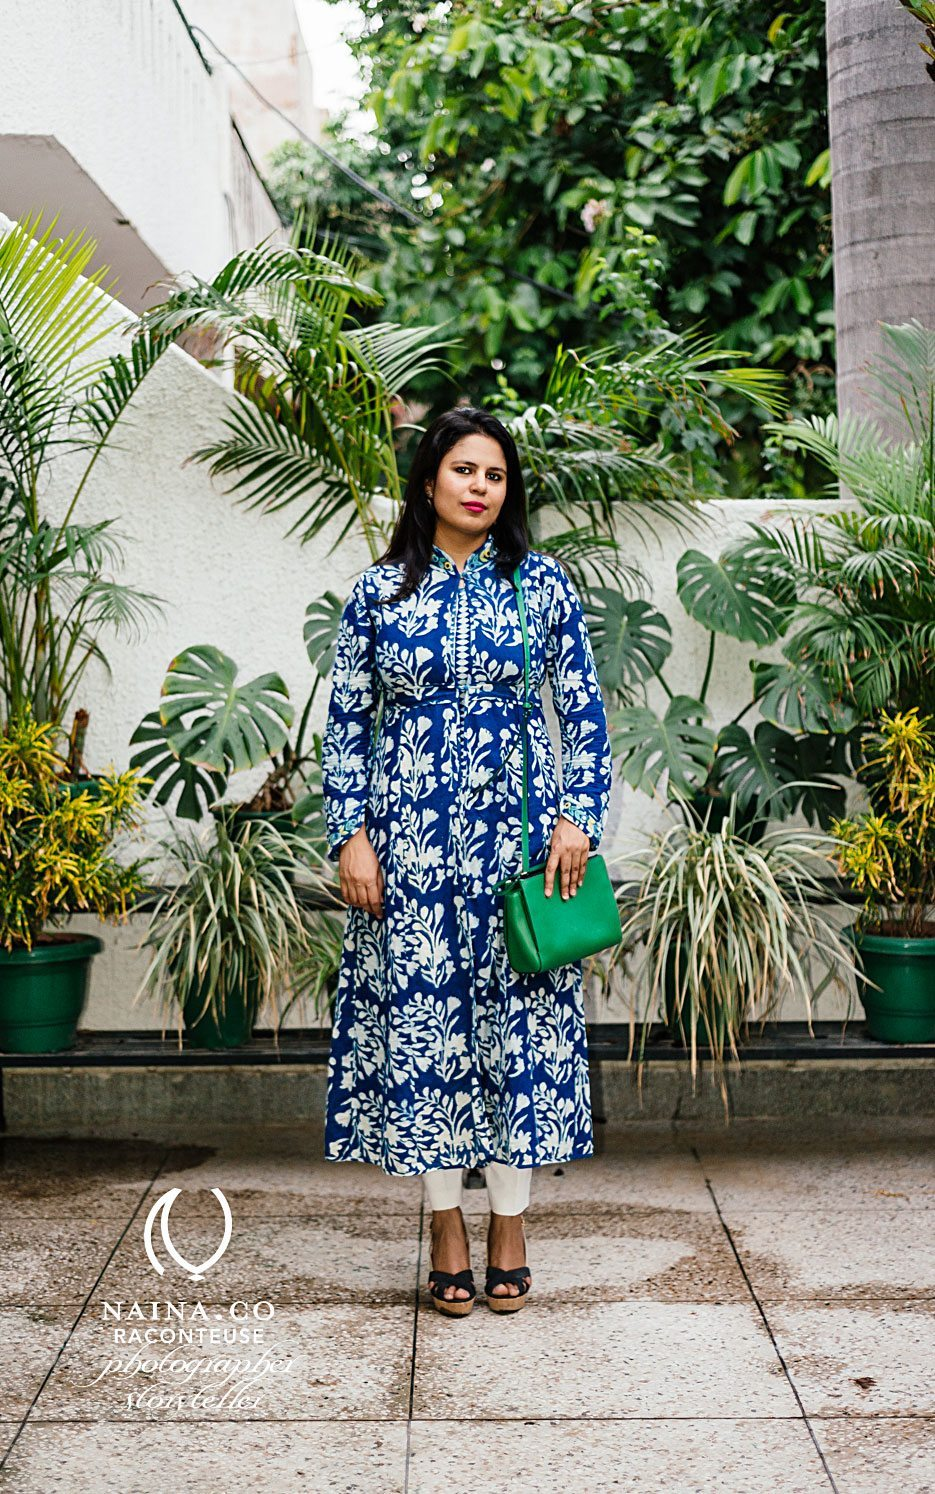 Naina.co-Photographer-Raconteuse-Storyteller-Luxury-Lifestyle-July-2014-Cotton-Council-International-LiveInCotton-Real-People